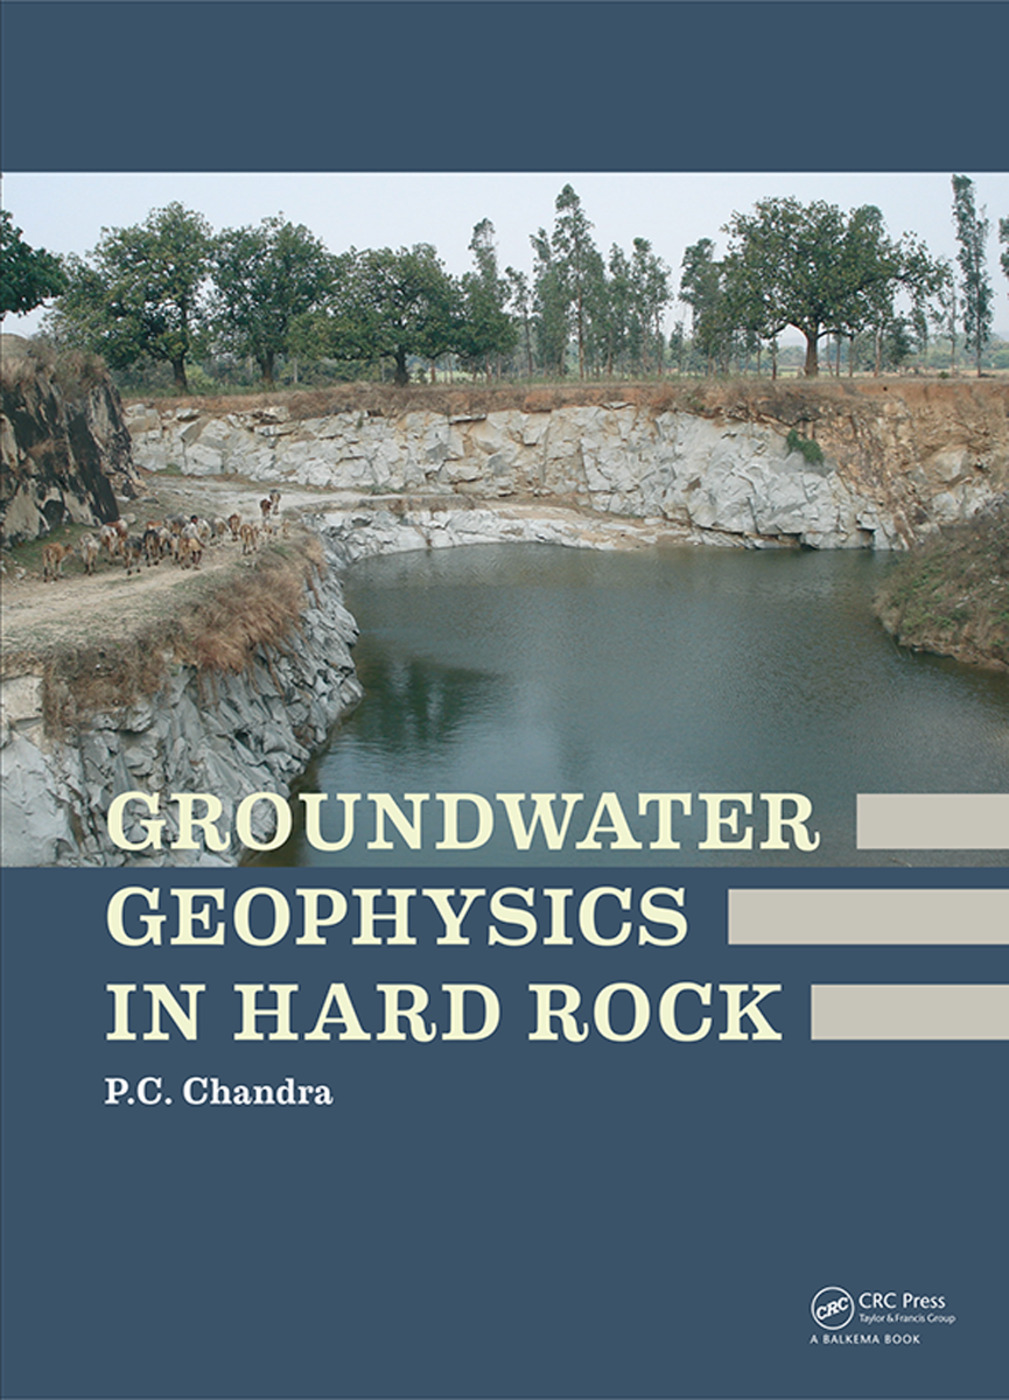 Groundwater Geophysics in Hard Rock: 1st Edition (Hardback) book cover